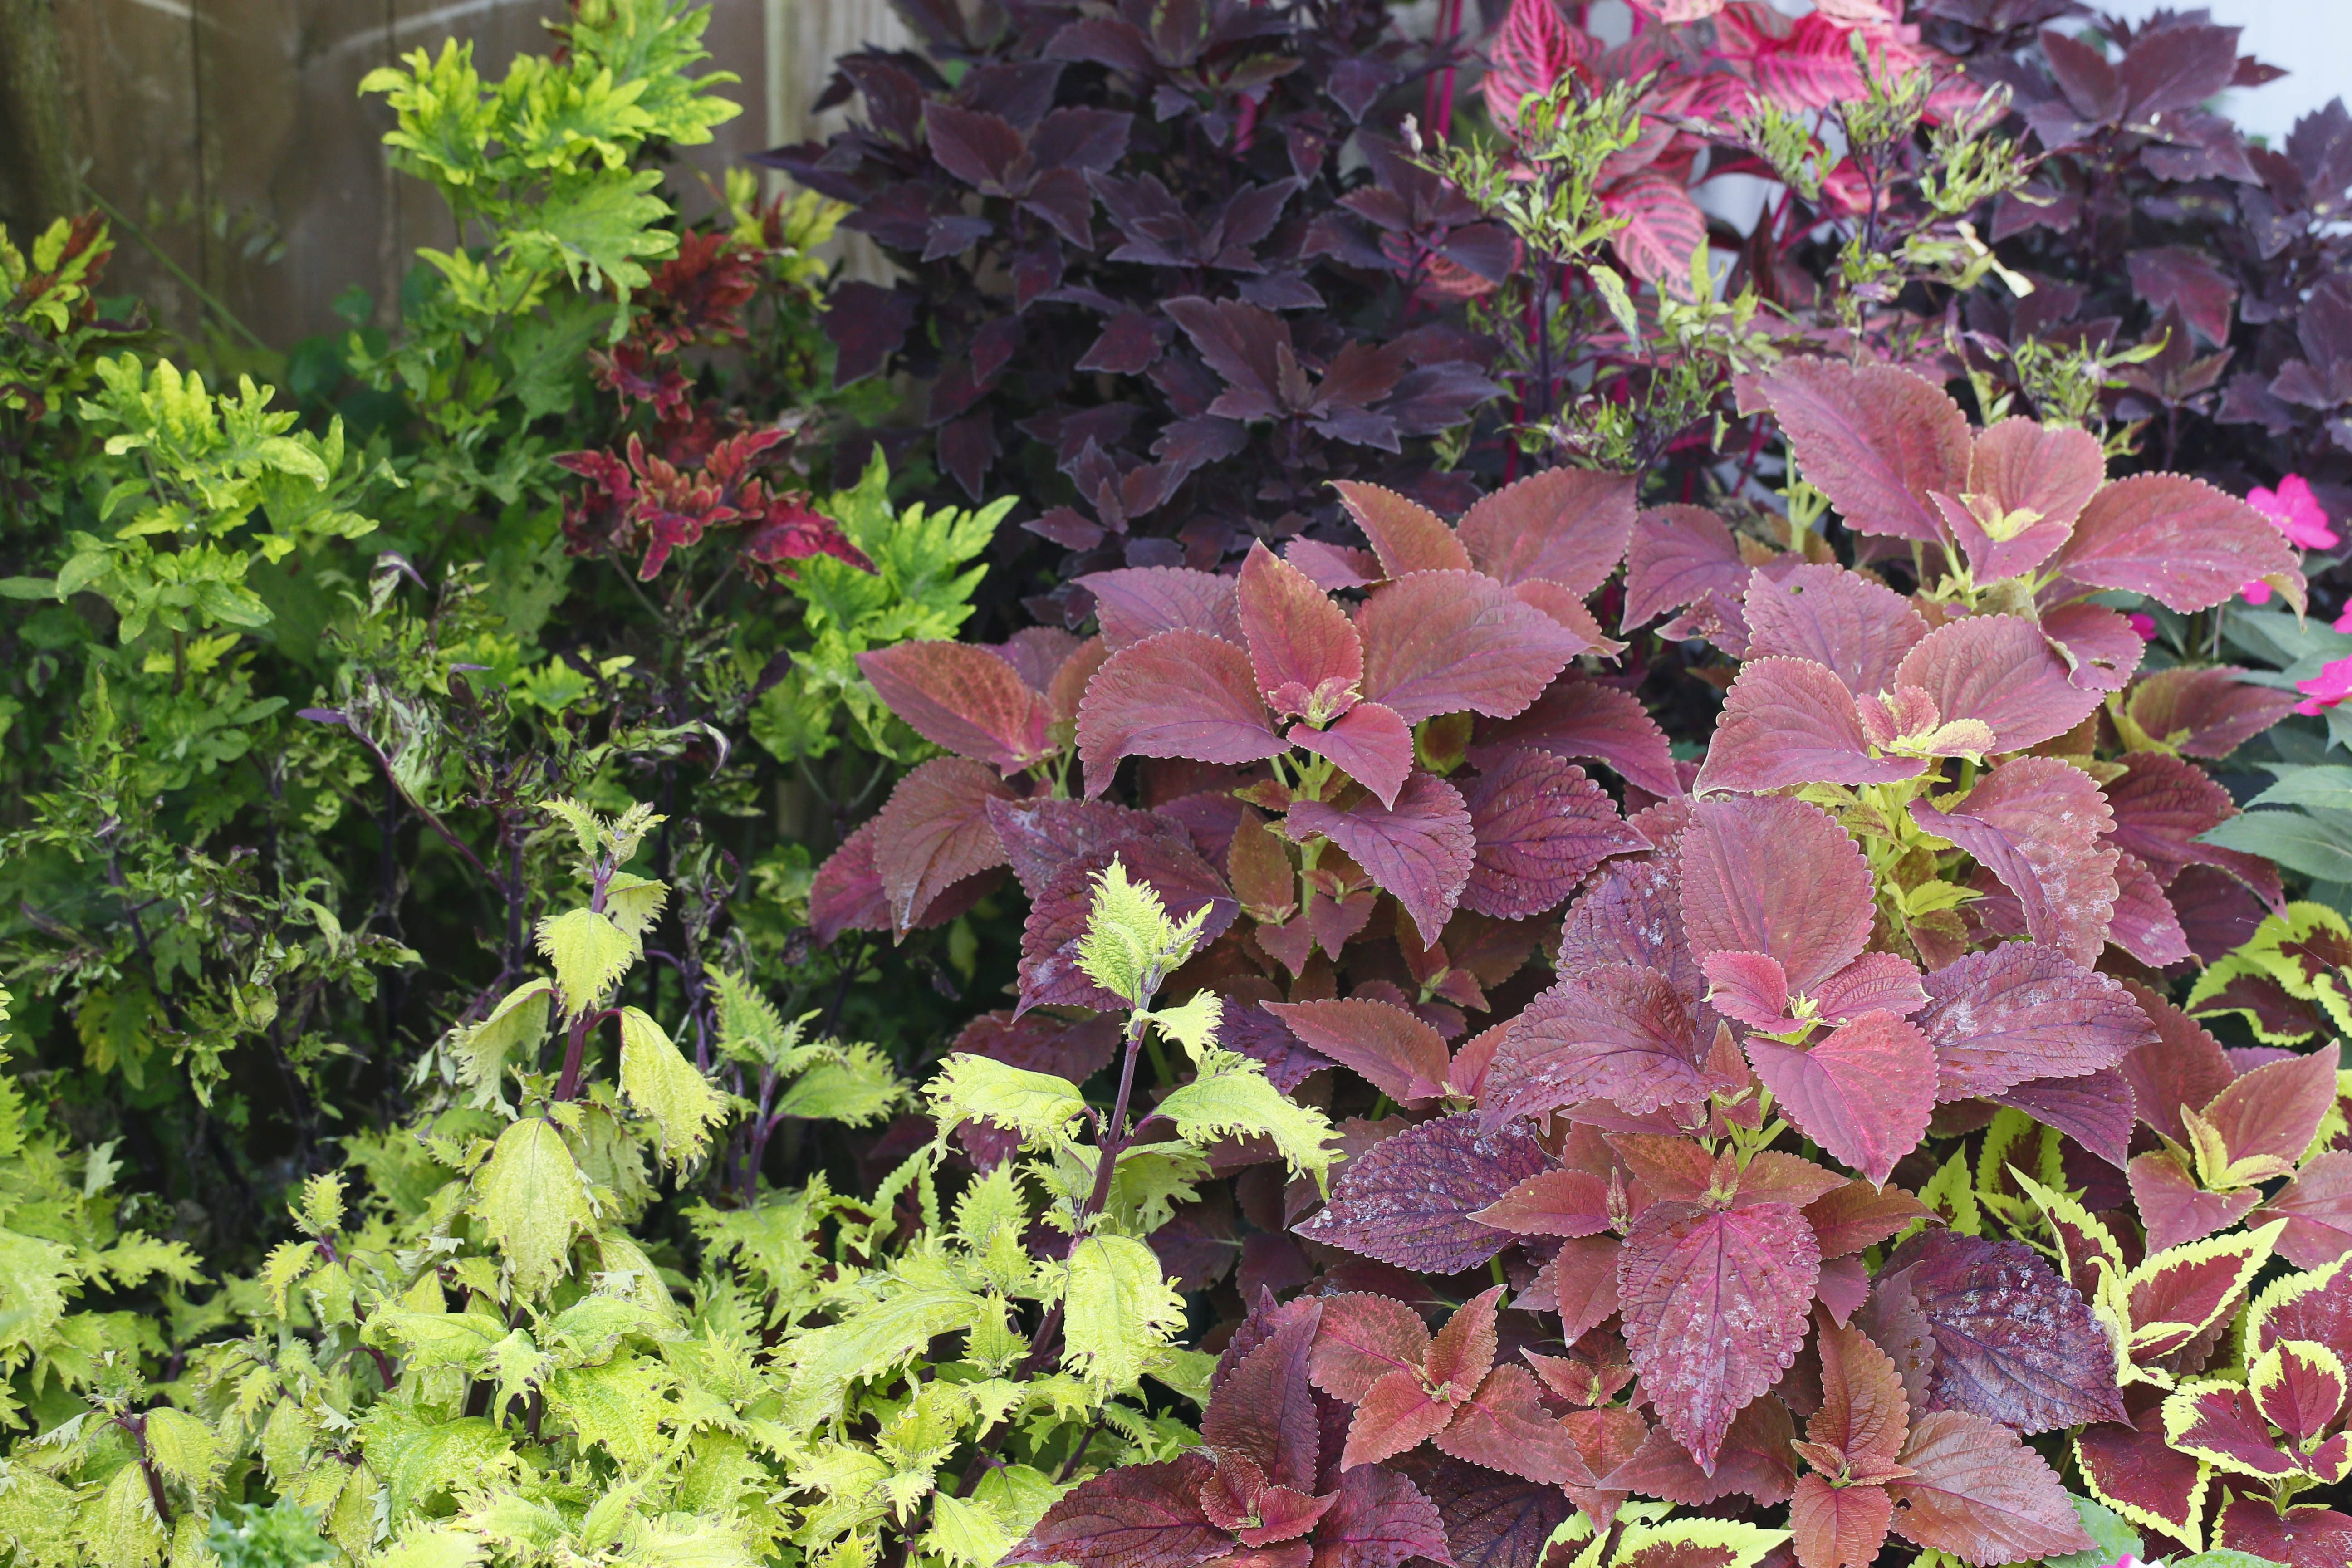 One of several types of coleus in the West Side garden of Joe Hopkins, Tuesday, July 23, 2013.  (Derek Gee/Buffalo News)